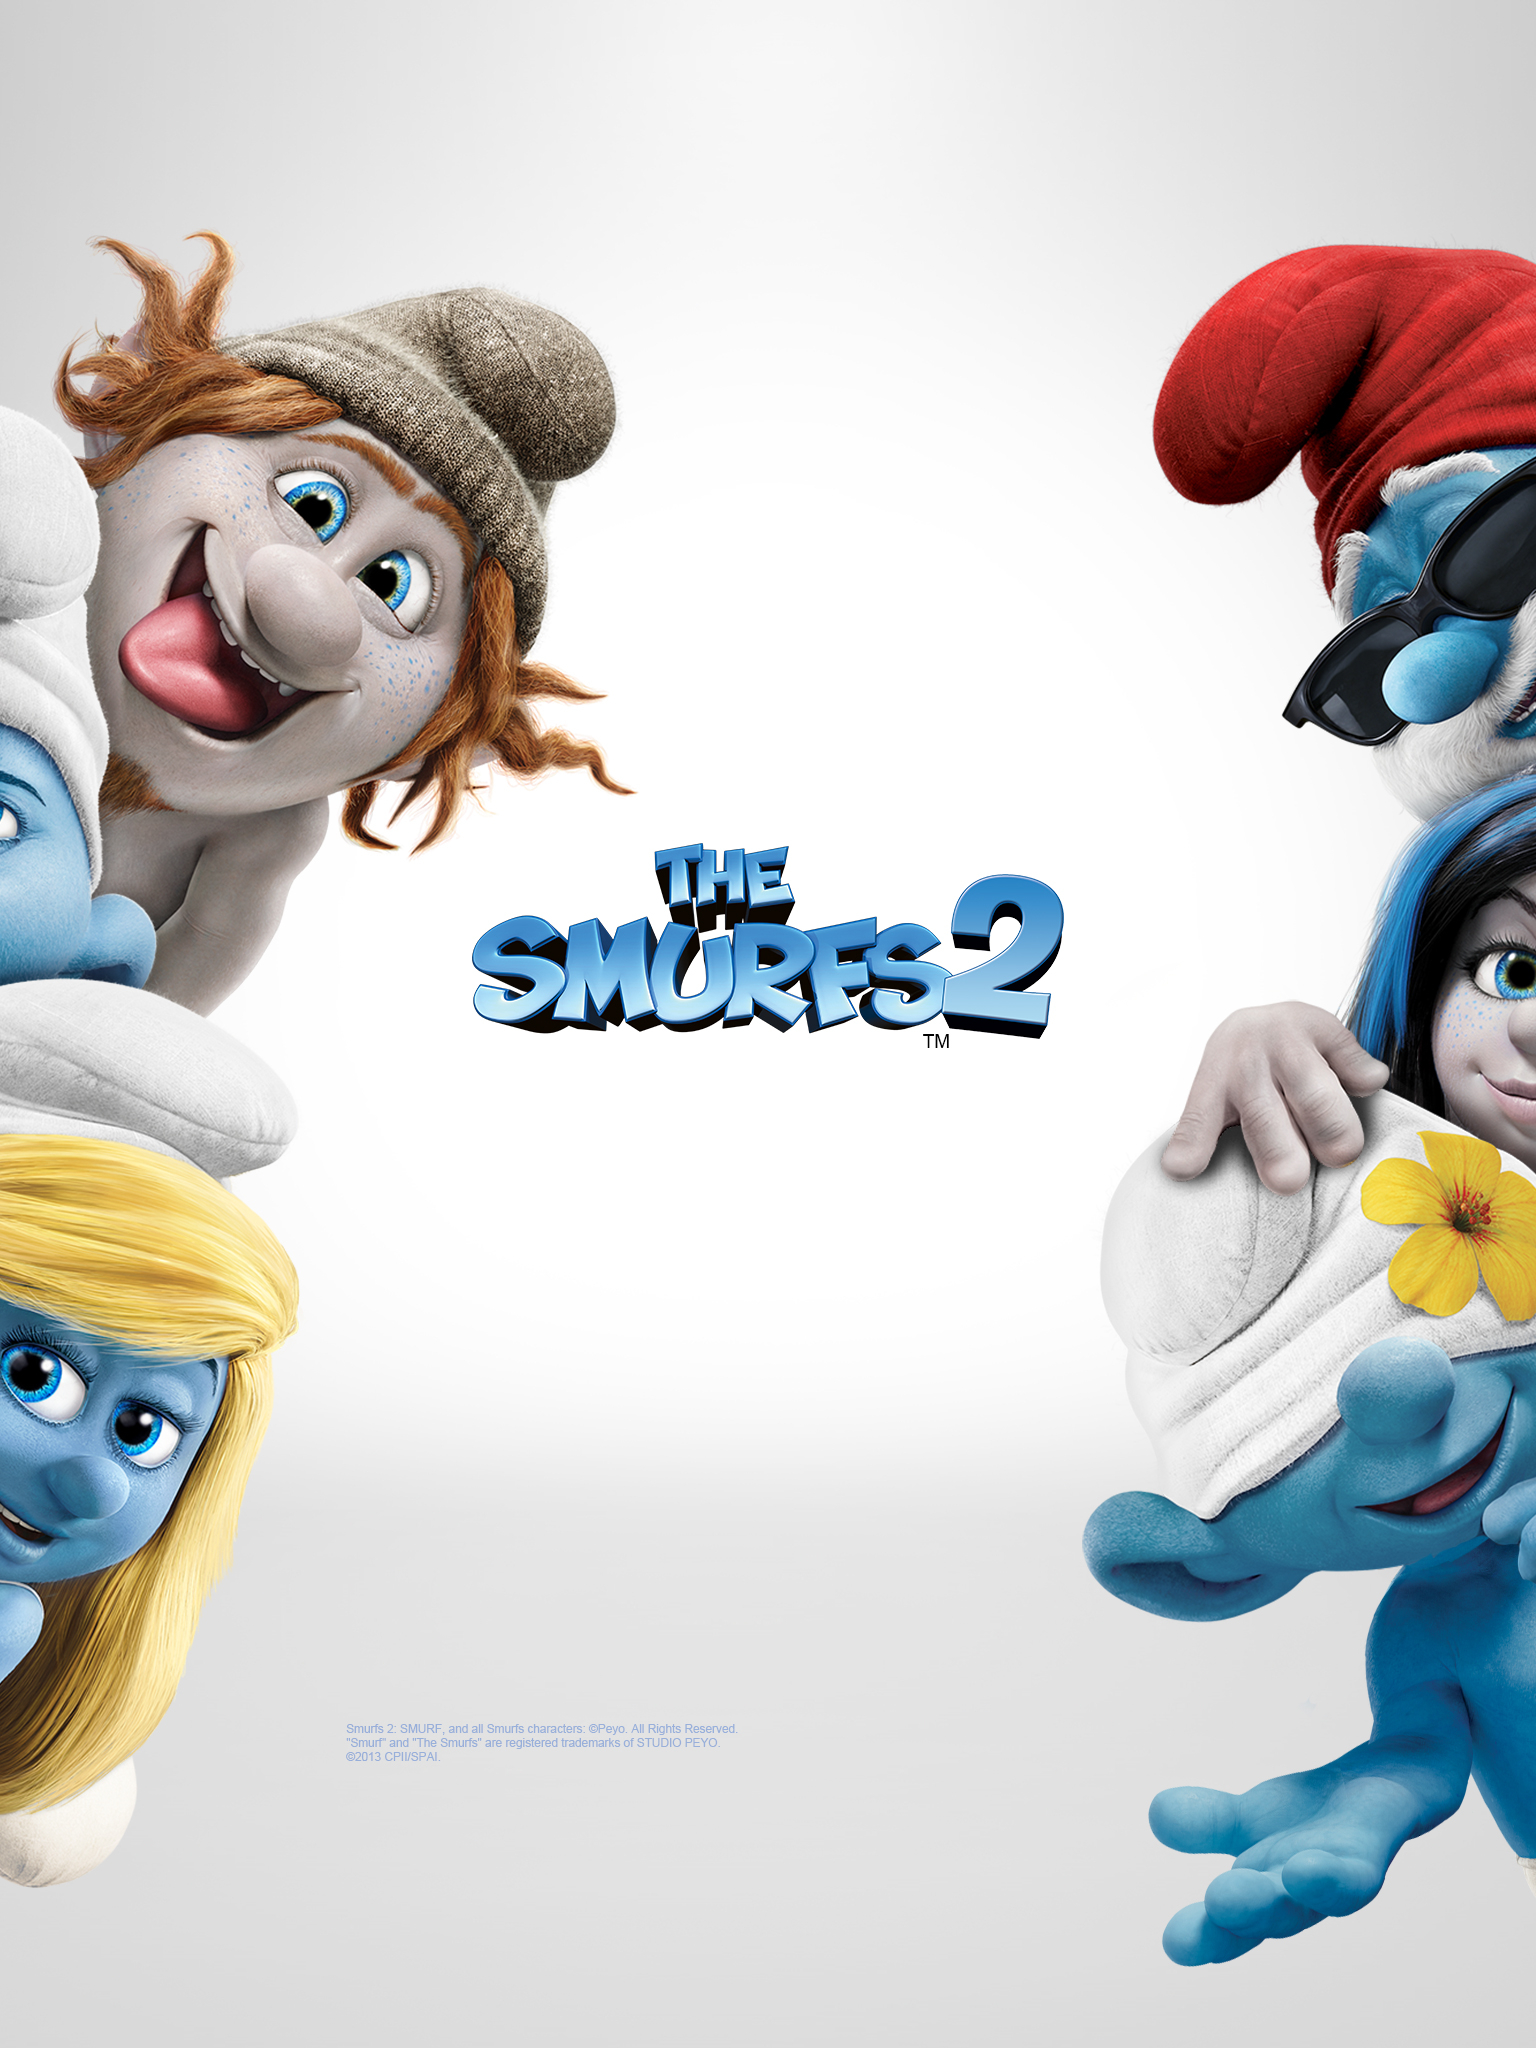 Free Download The Smurfs 2 2013 Wallpapers Facebook Cover Photos Characters 2048x2048 For Your Desktop Mobile Tablet Explore 75 Smurf Wallpapers Smurfs Wallpaper For Desktop Free Vintage Smurf Wallpaper Papa Smurf Wallpaper